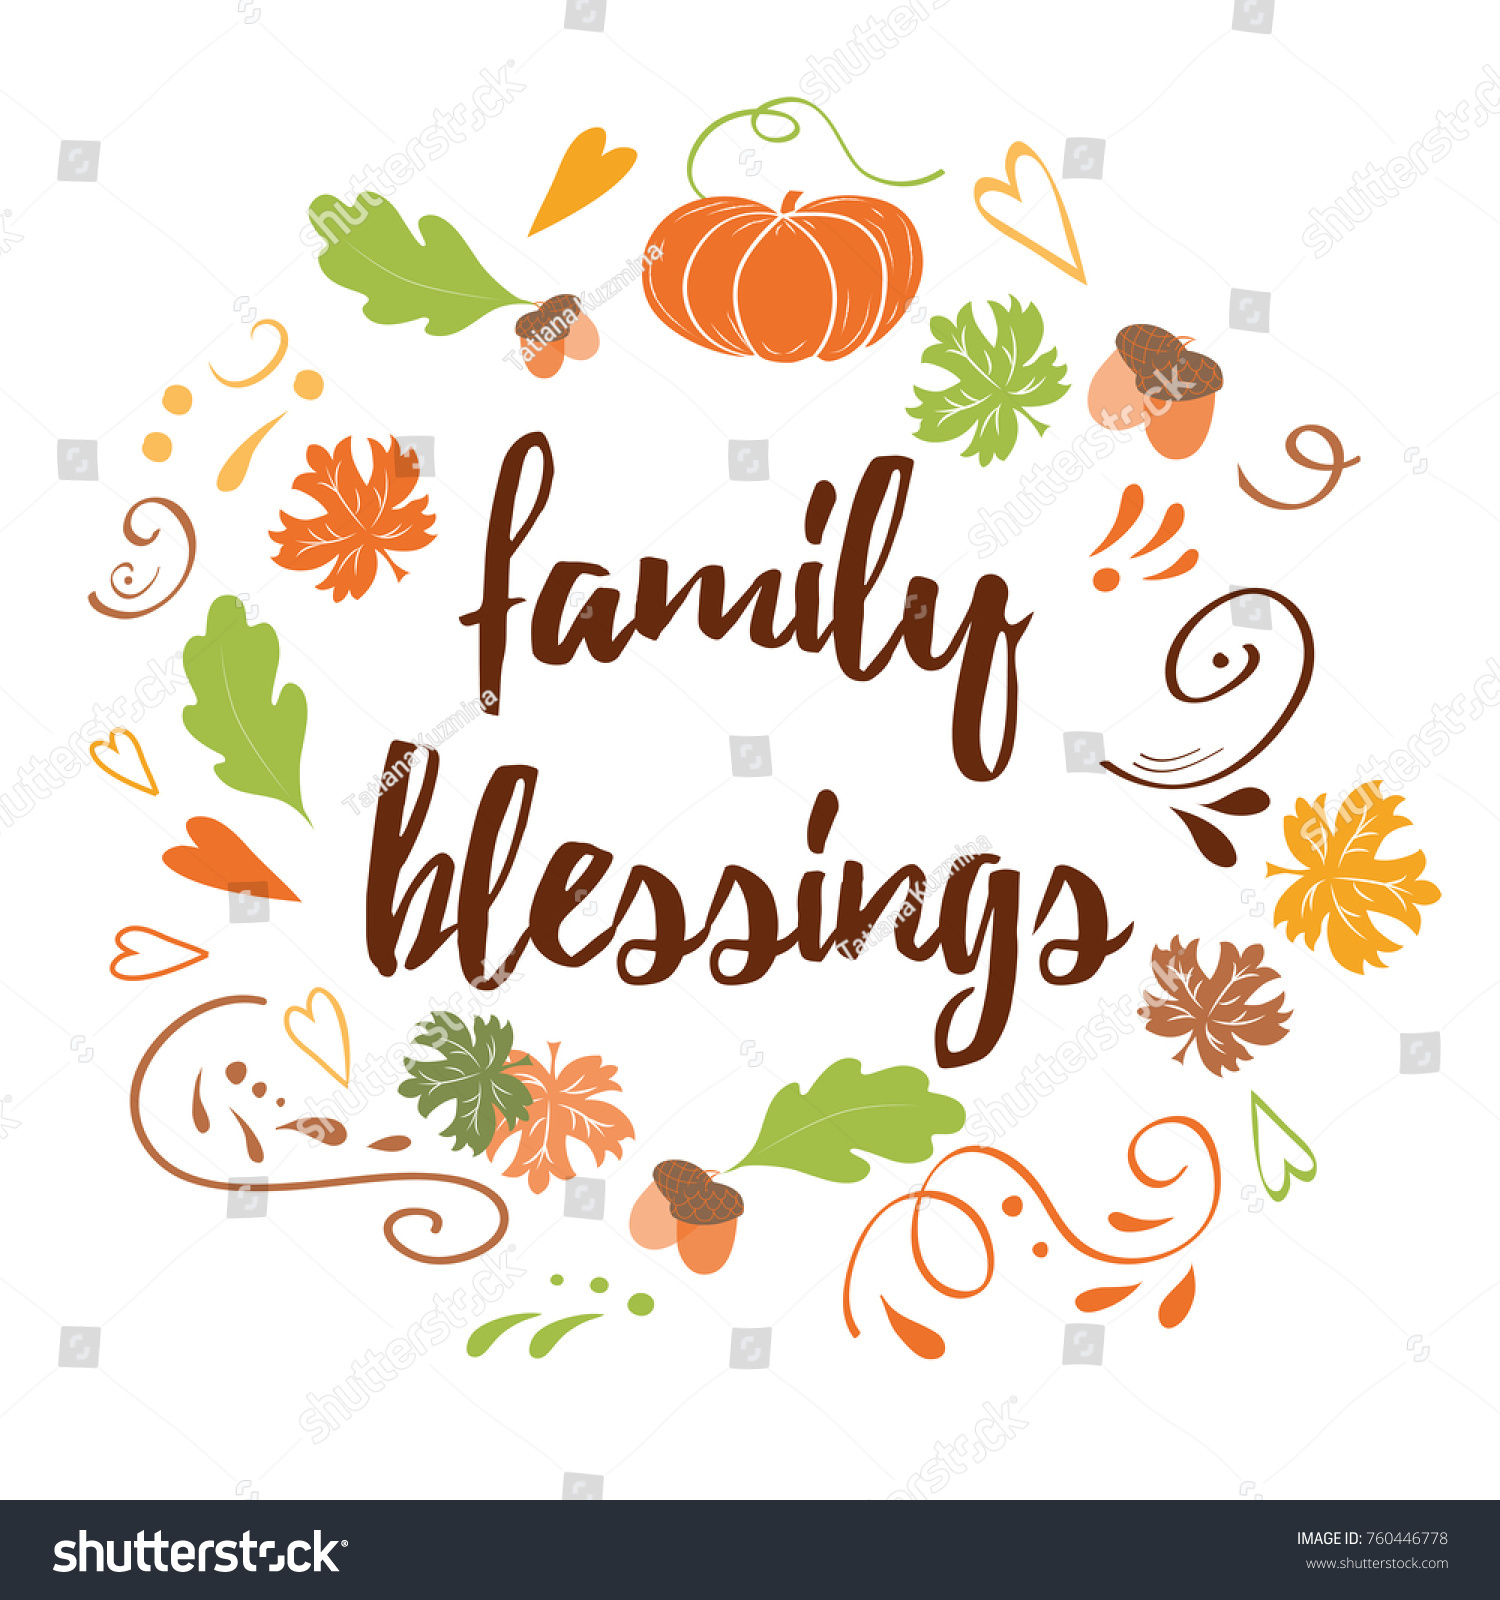 Hand Drawn Thanksgiving Wish Family Blessing Stock Vector Royalty